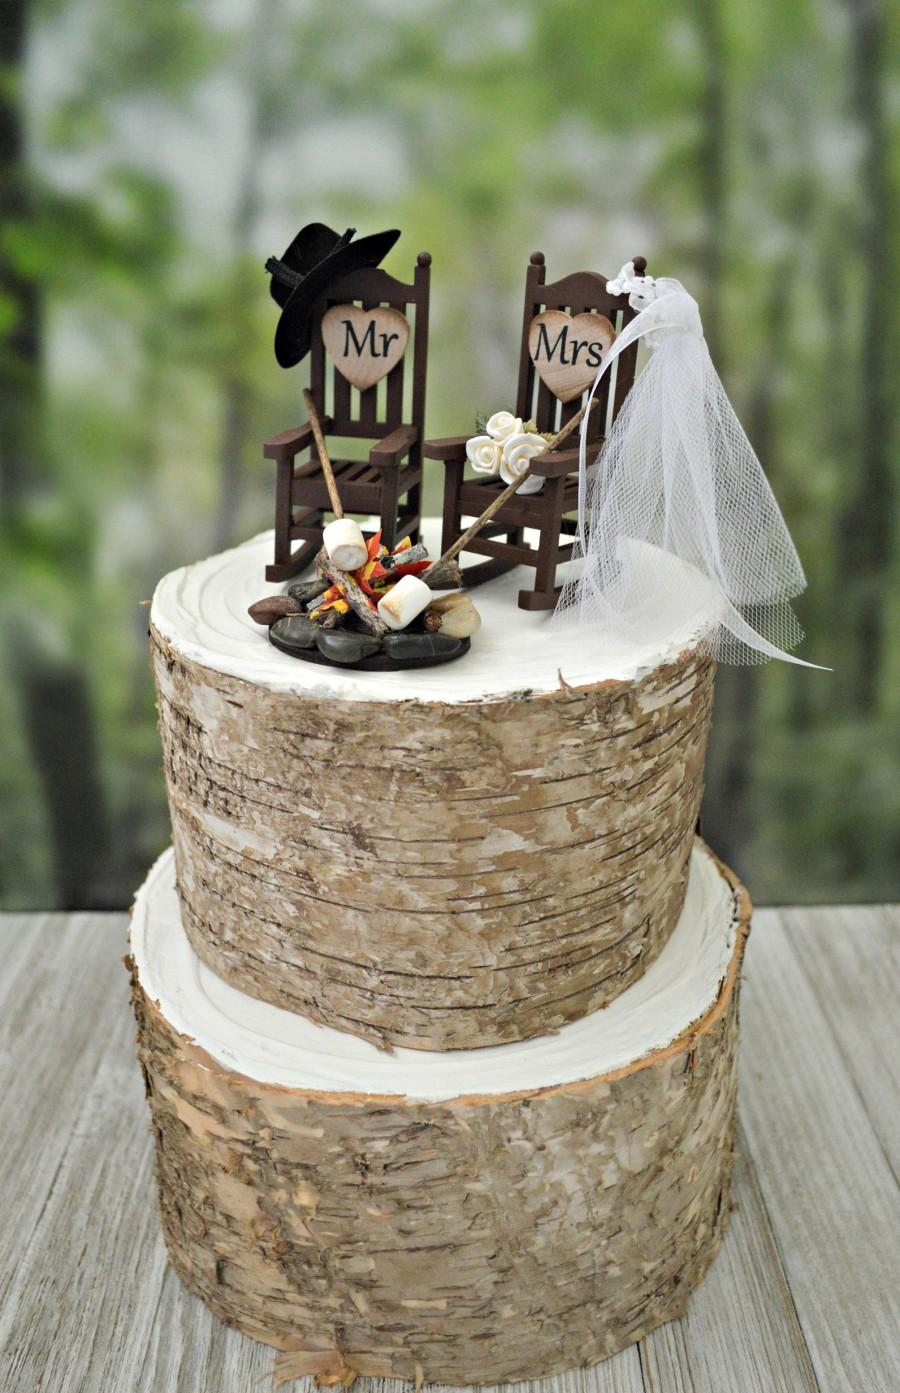 Wedding - Miniature rocking chair campfire marshmallow wedding cake topper camping roasting marshmallow bride groom 6 inch cake small western country